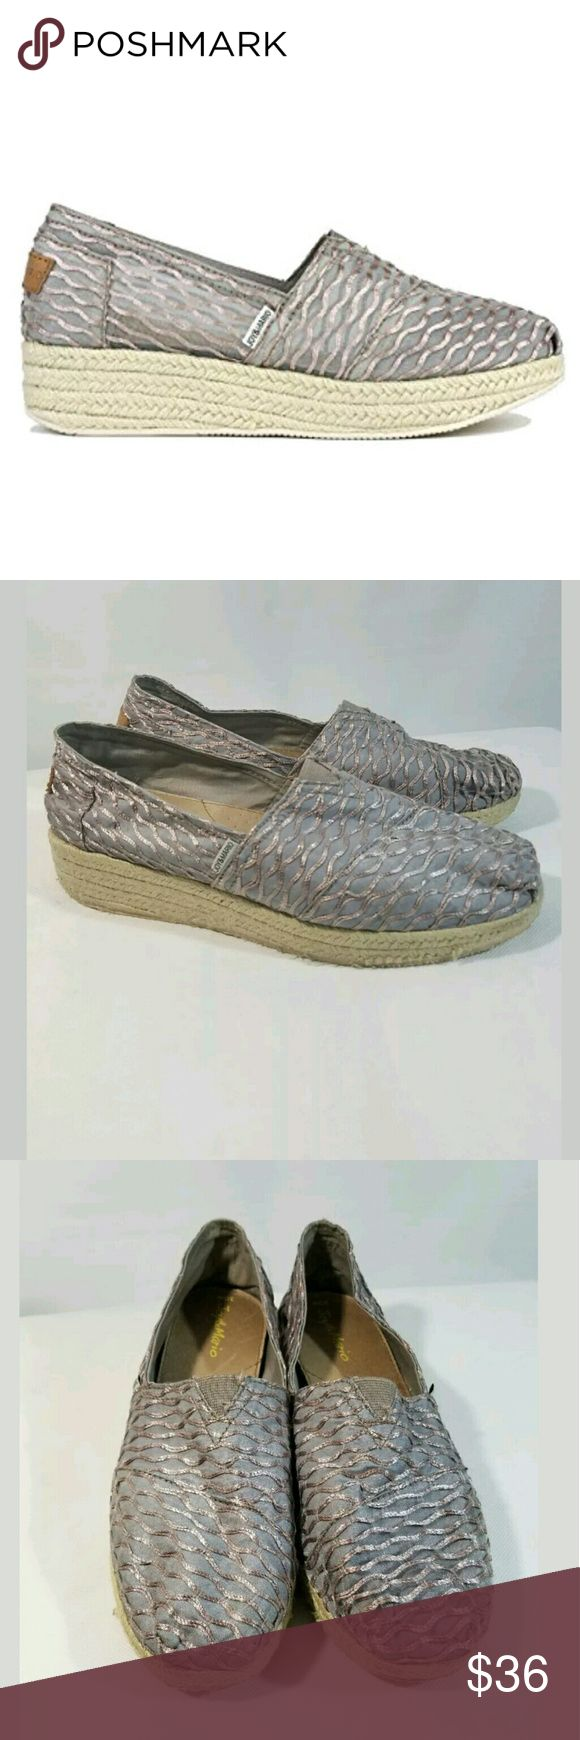 Joy & Mario Stacked Espadrille Shoes Size 10W Joy & Mario Stacked Espadrille Shoes Women's Size 10W Neutral  Very good used condition.    LB joy & mario Shoes Espadrilles